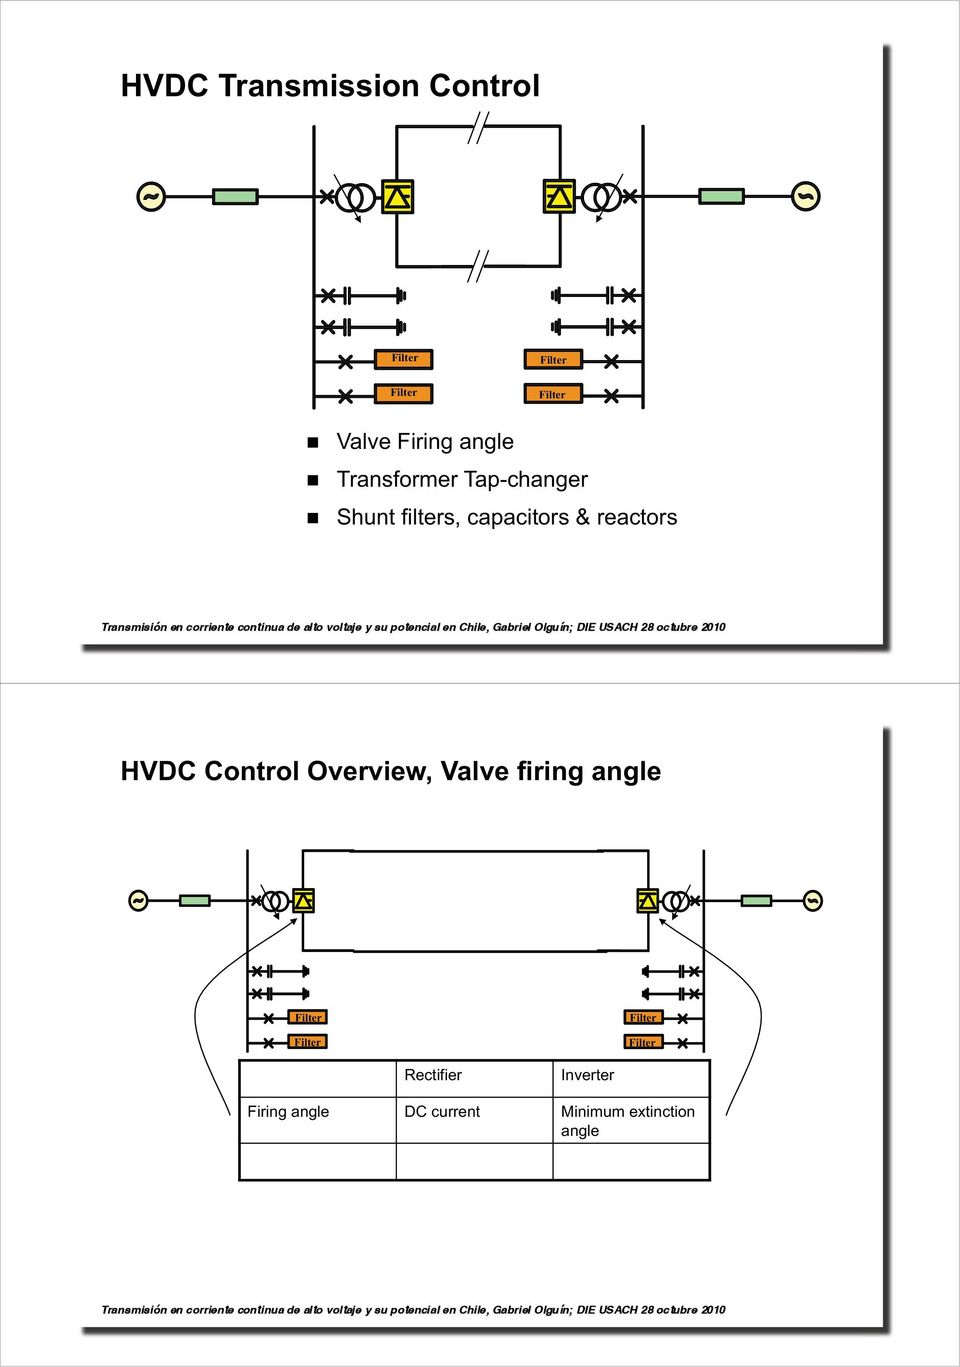 reactors HVDC Control Overview, Valve firing angle